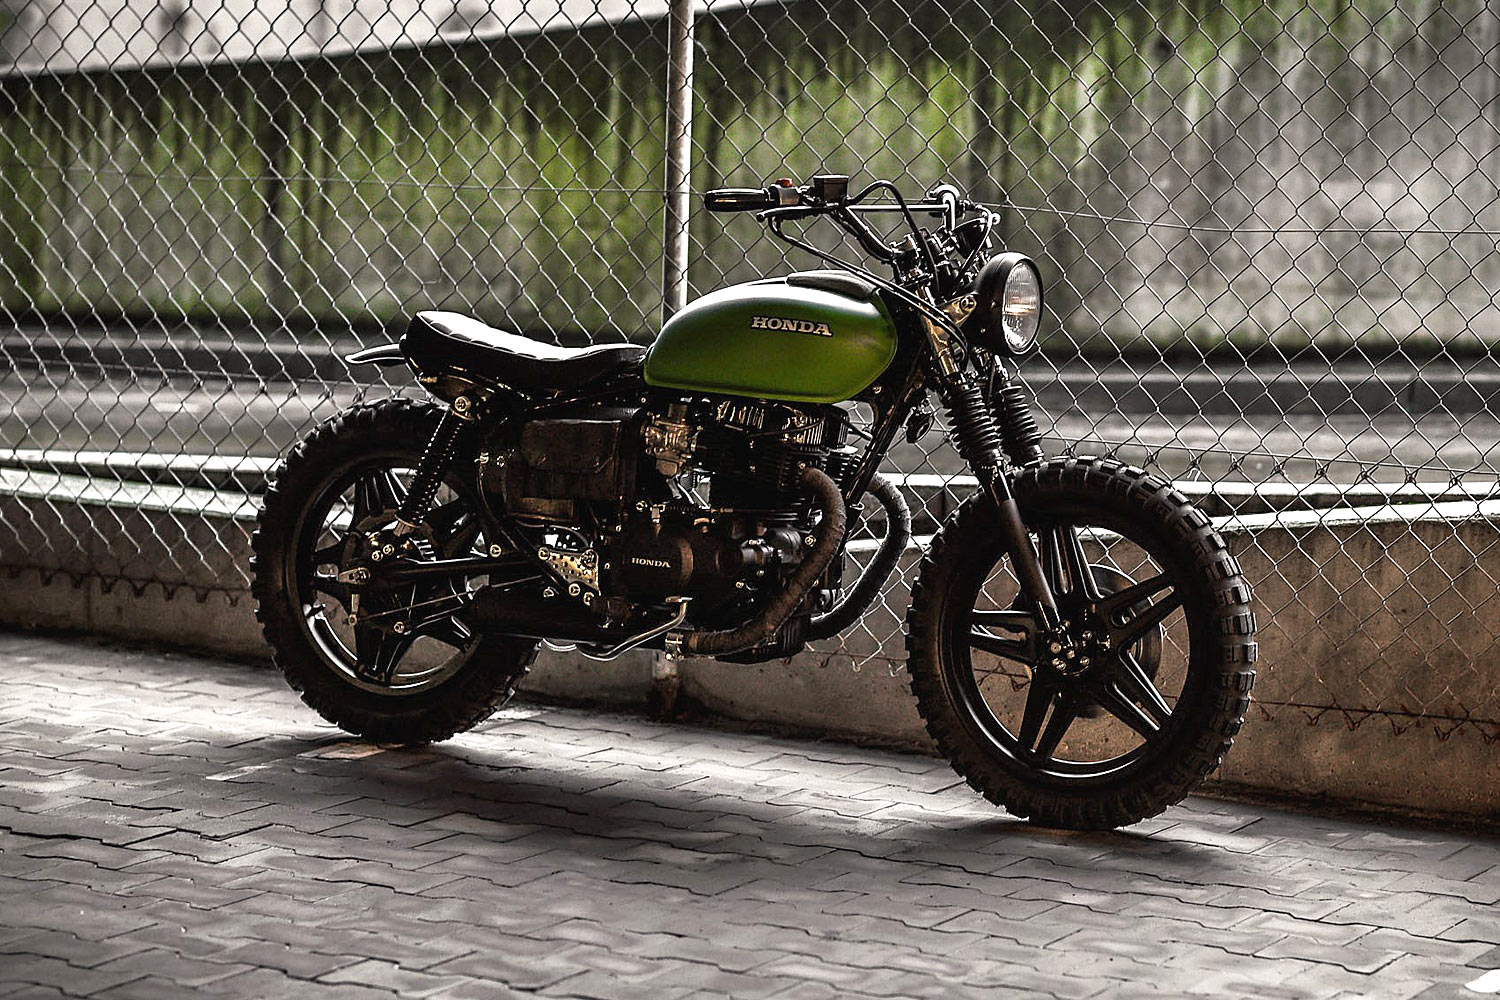 A 'Great Escape' Honda CM400 Tracker from Poland's T. Jasin Motorcycles